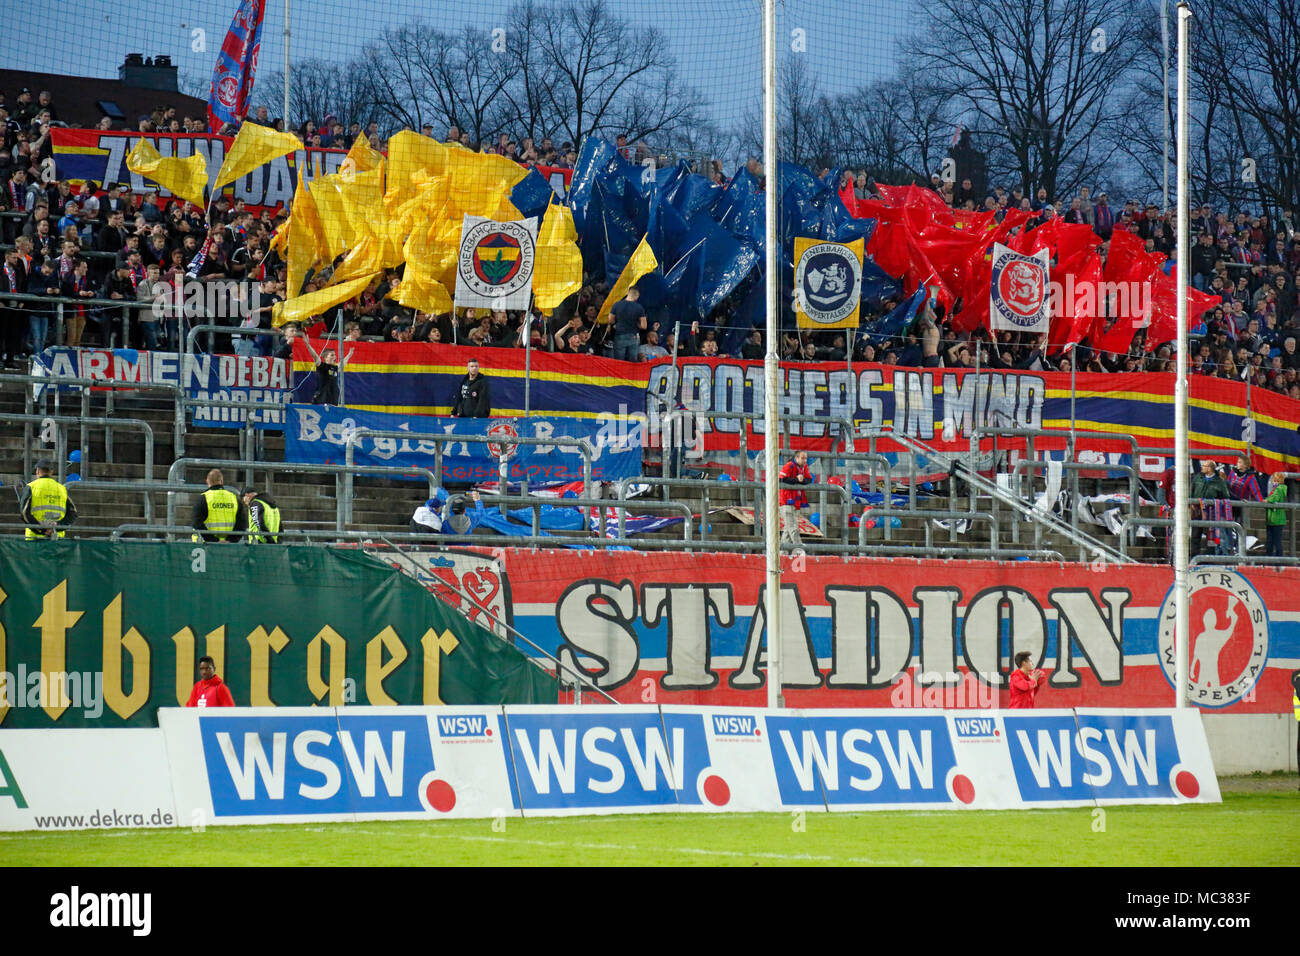 sports, football, Regional League West, 2017/2018, Wuppertaler SV vs Rot Weiss Essen 3:1, choreography of the Wuppertal football fans Stock Photo